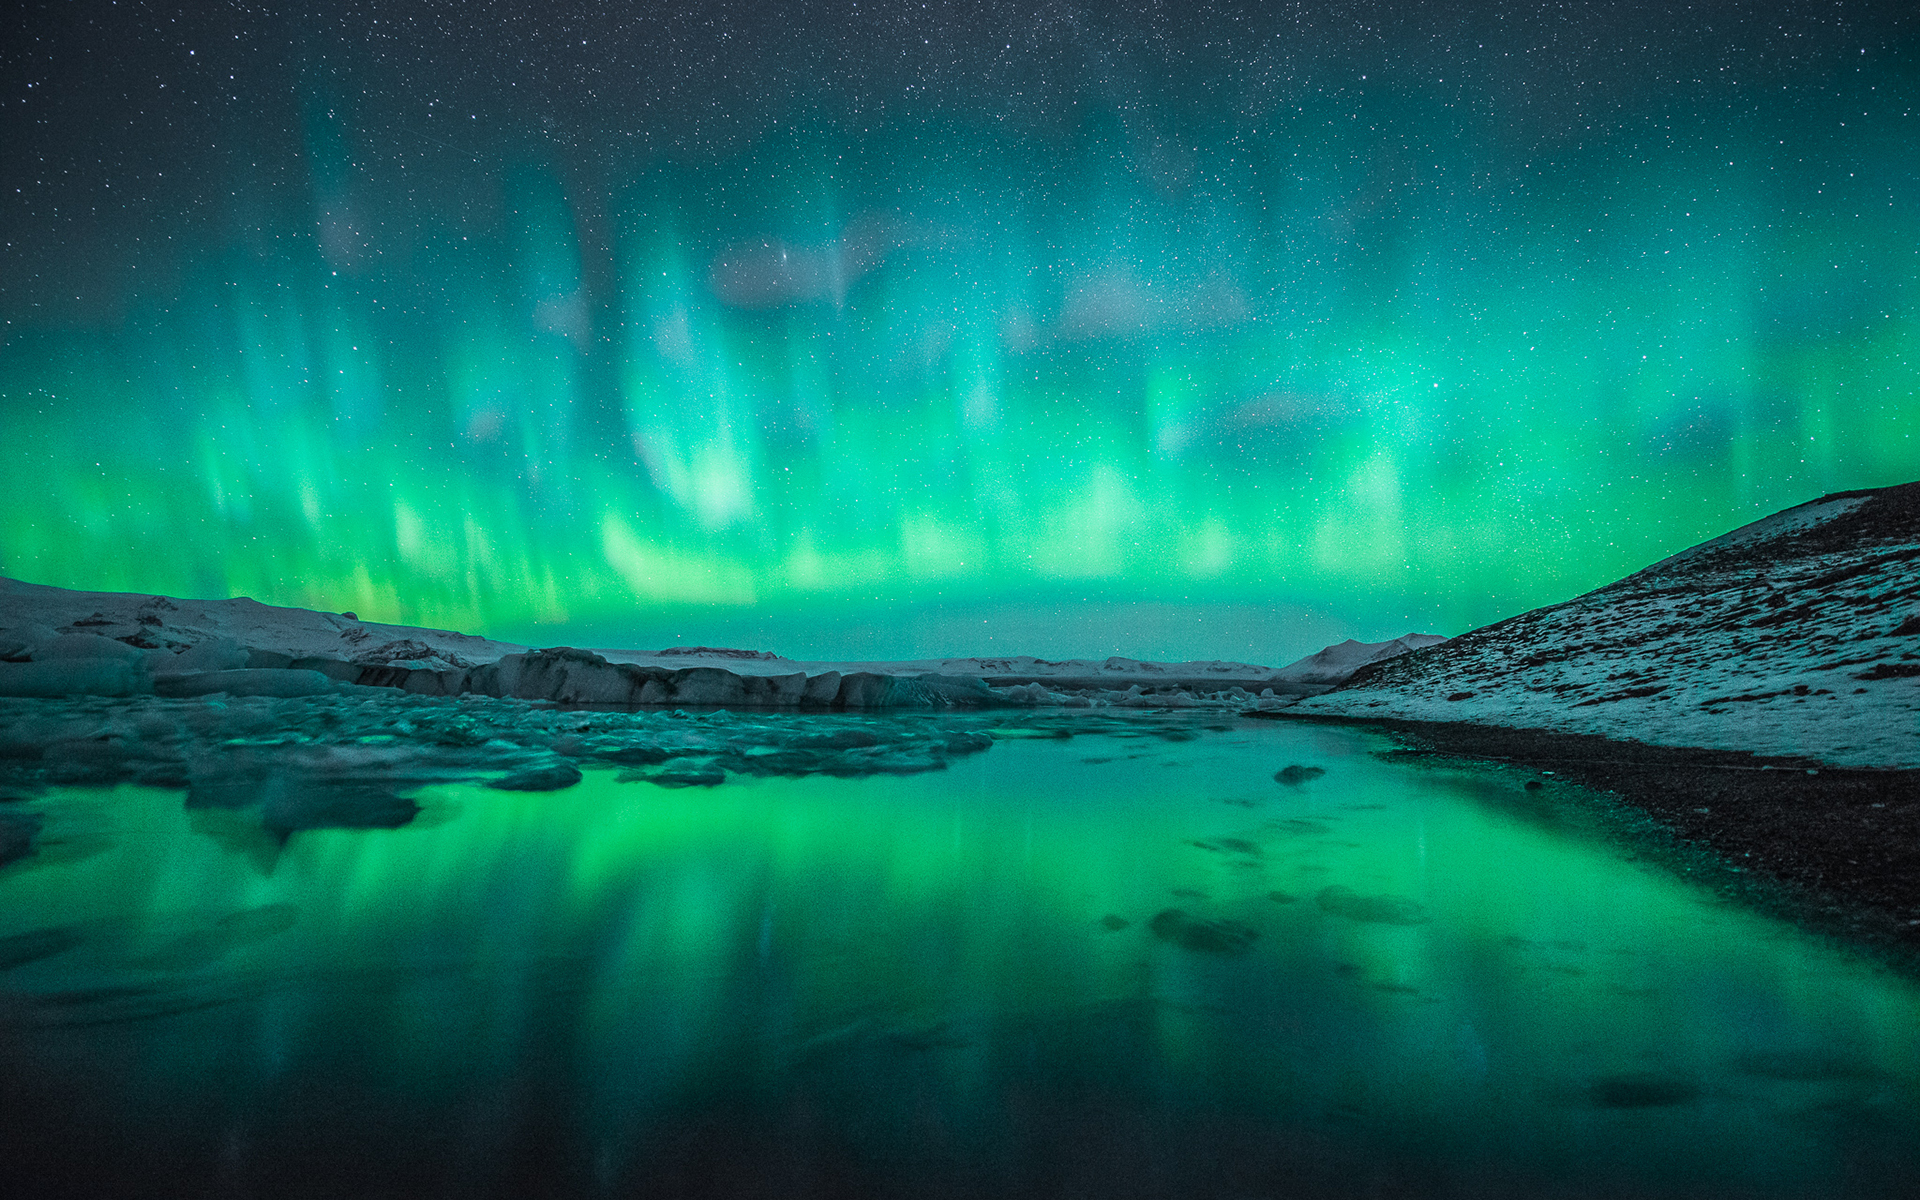 Wallpaper Northern Lights Wallpaper: Wallpaper Winter Snow Northern Lights Aurora Borealis Hd 1920x1200px